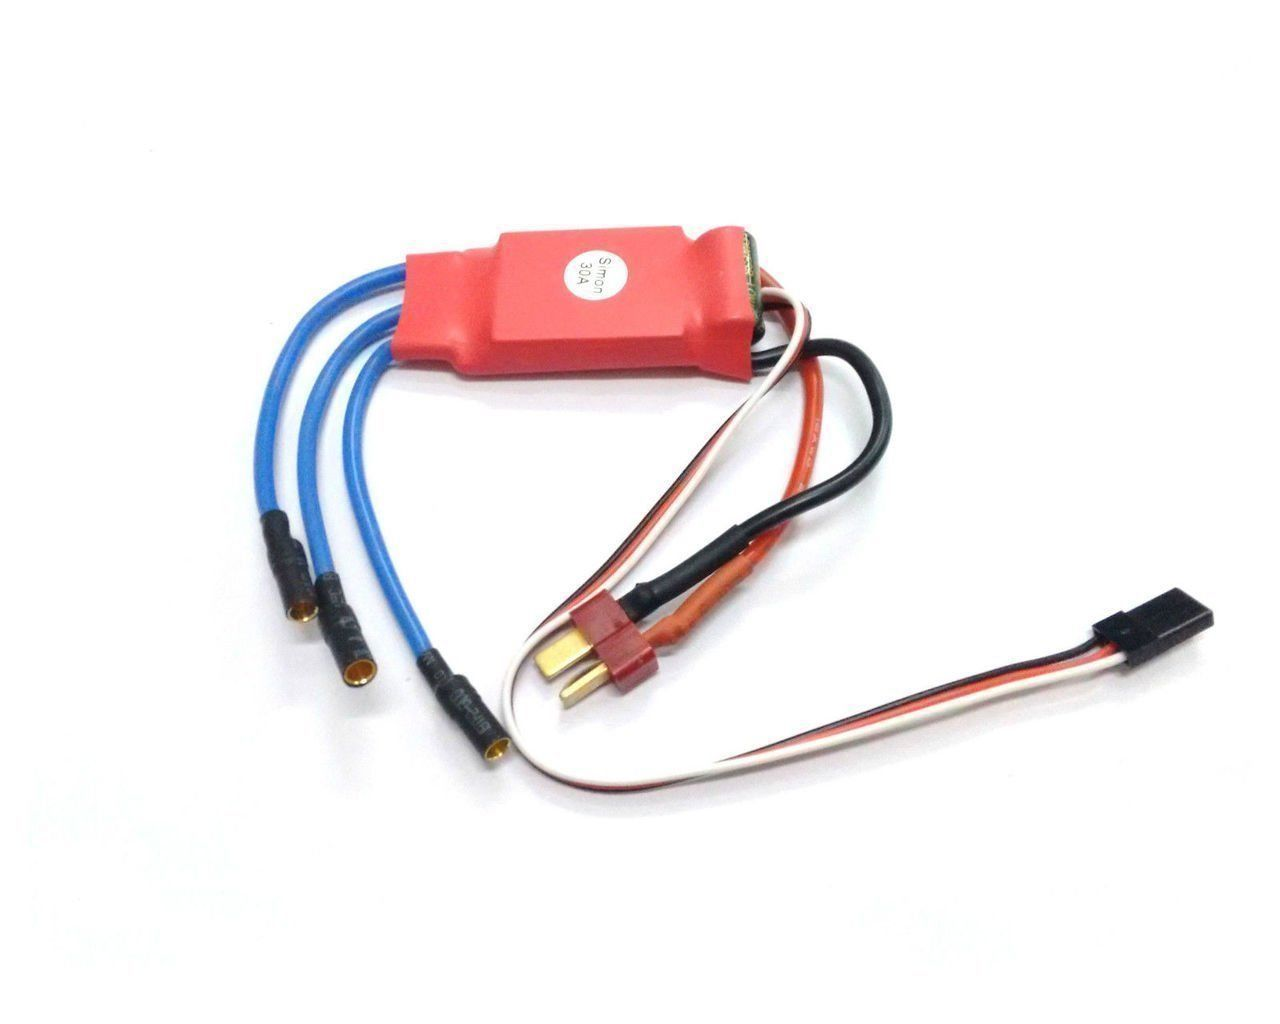 hight resolution of simonk 30a bldc esc electronic speed controller